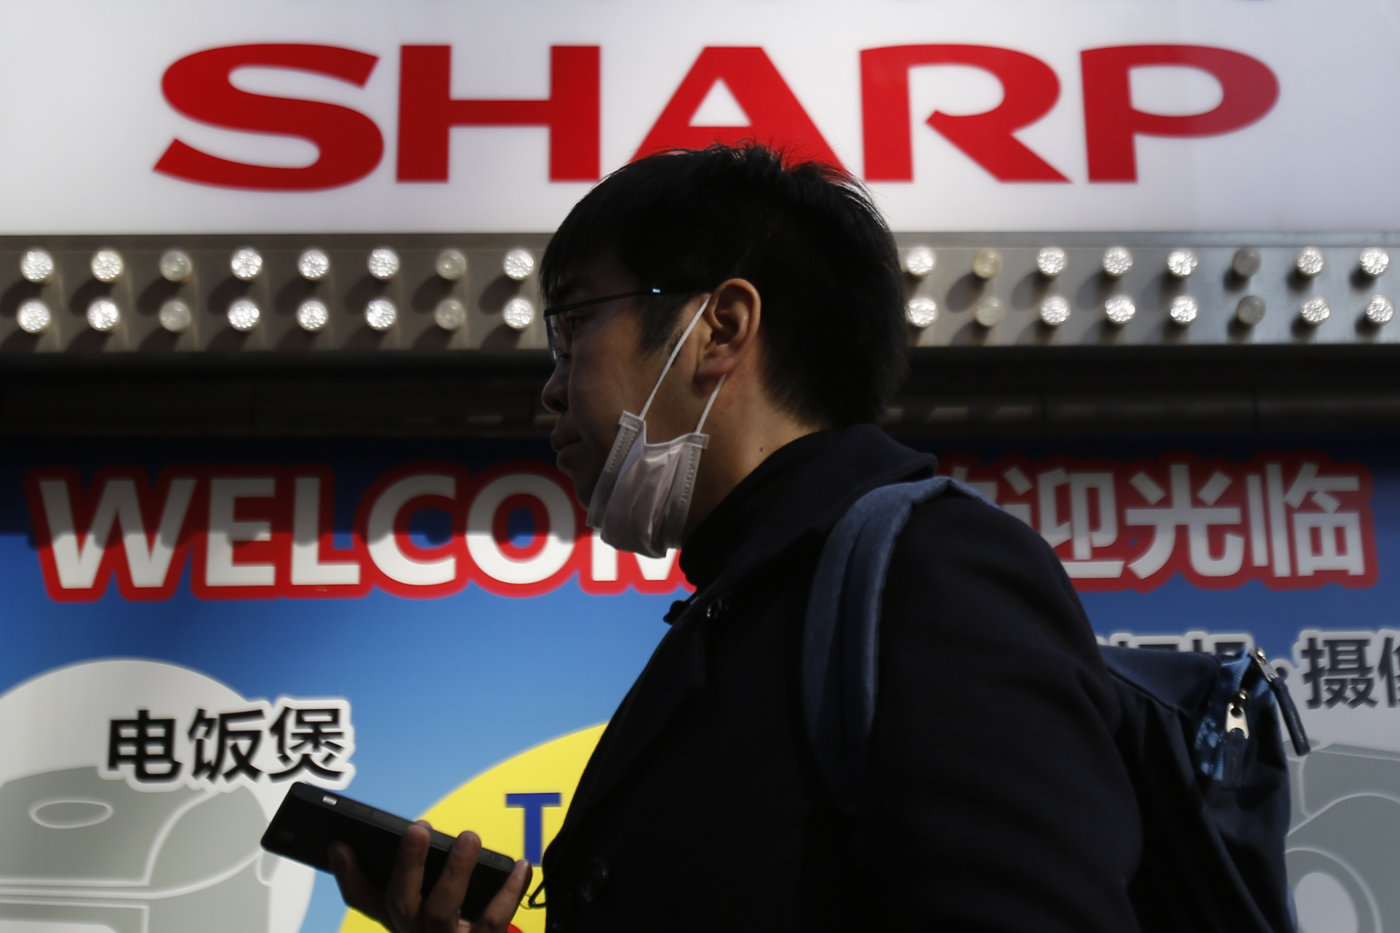 Reuters: Sharp, Foxconn to Sign Deal Soon